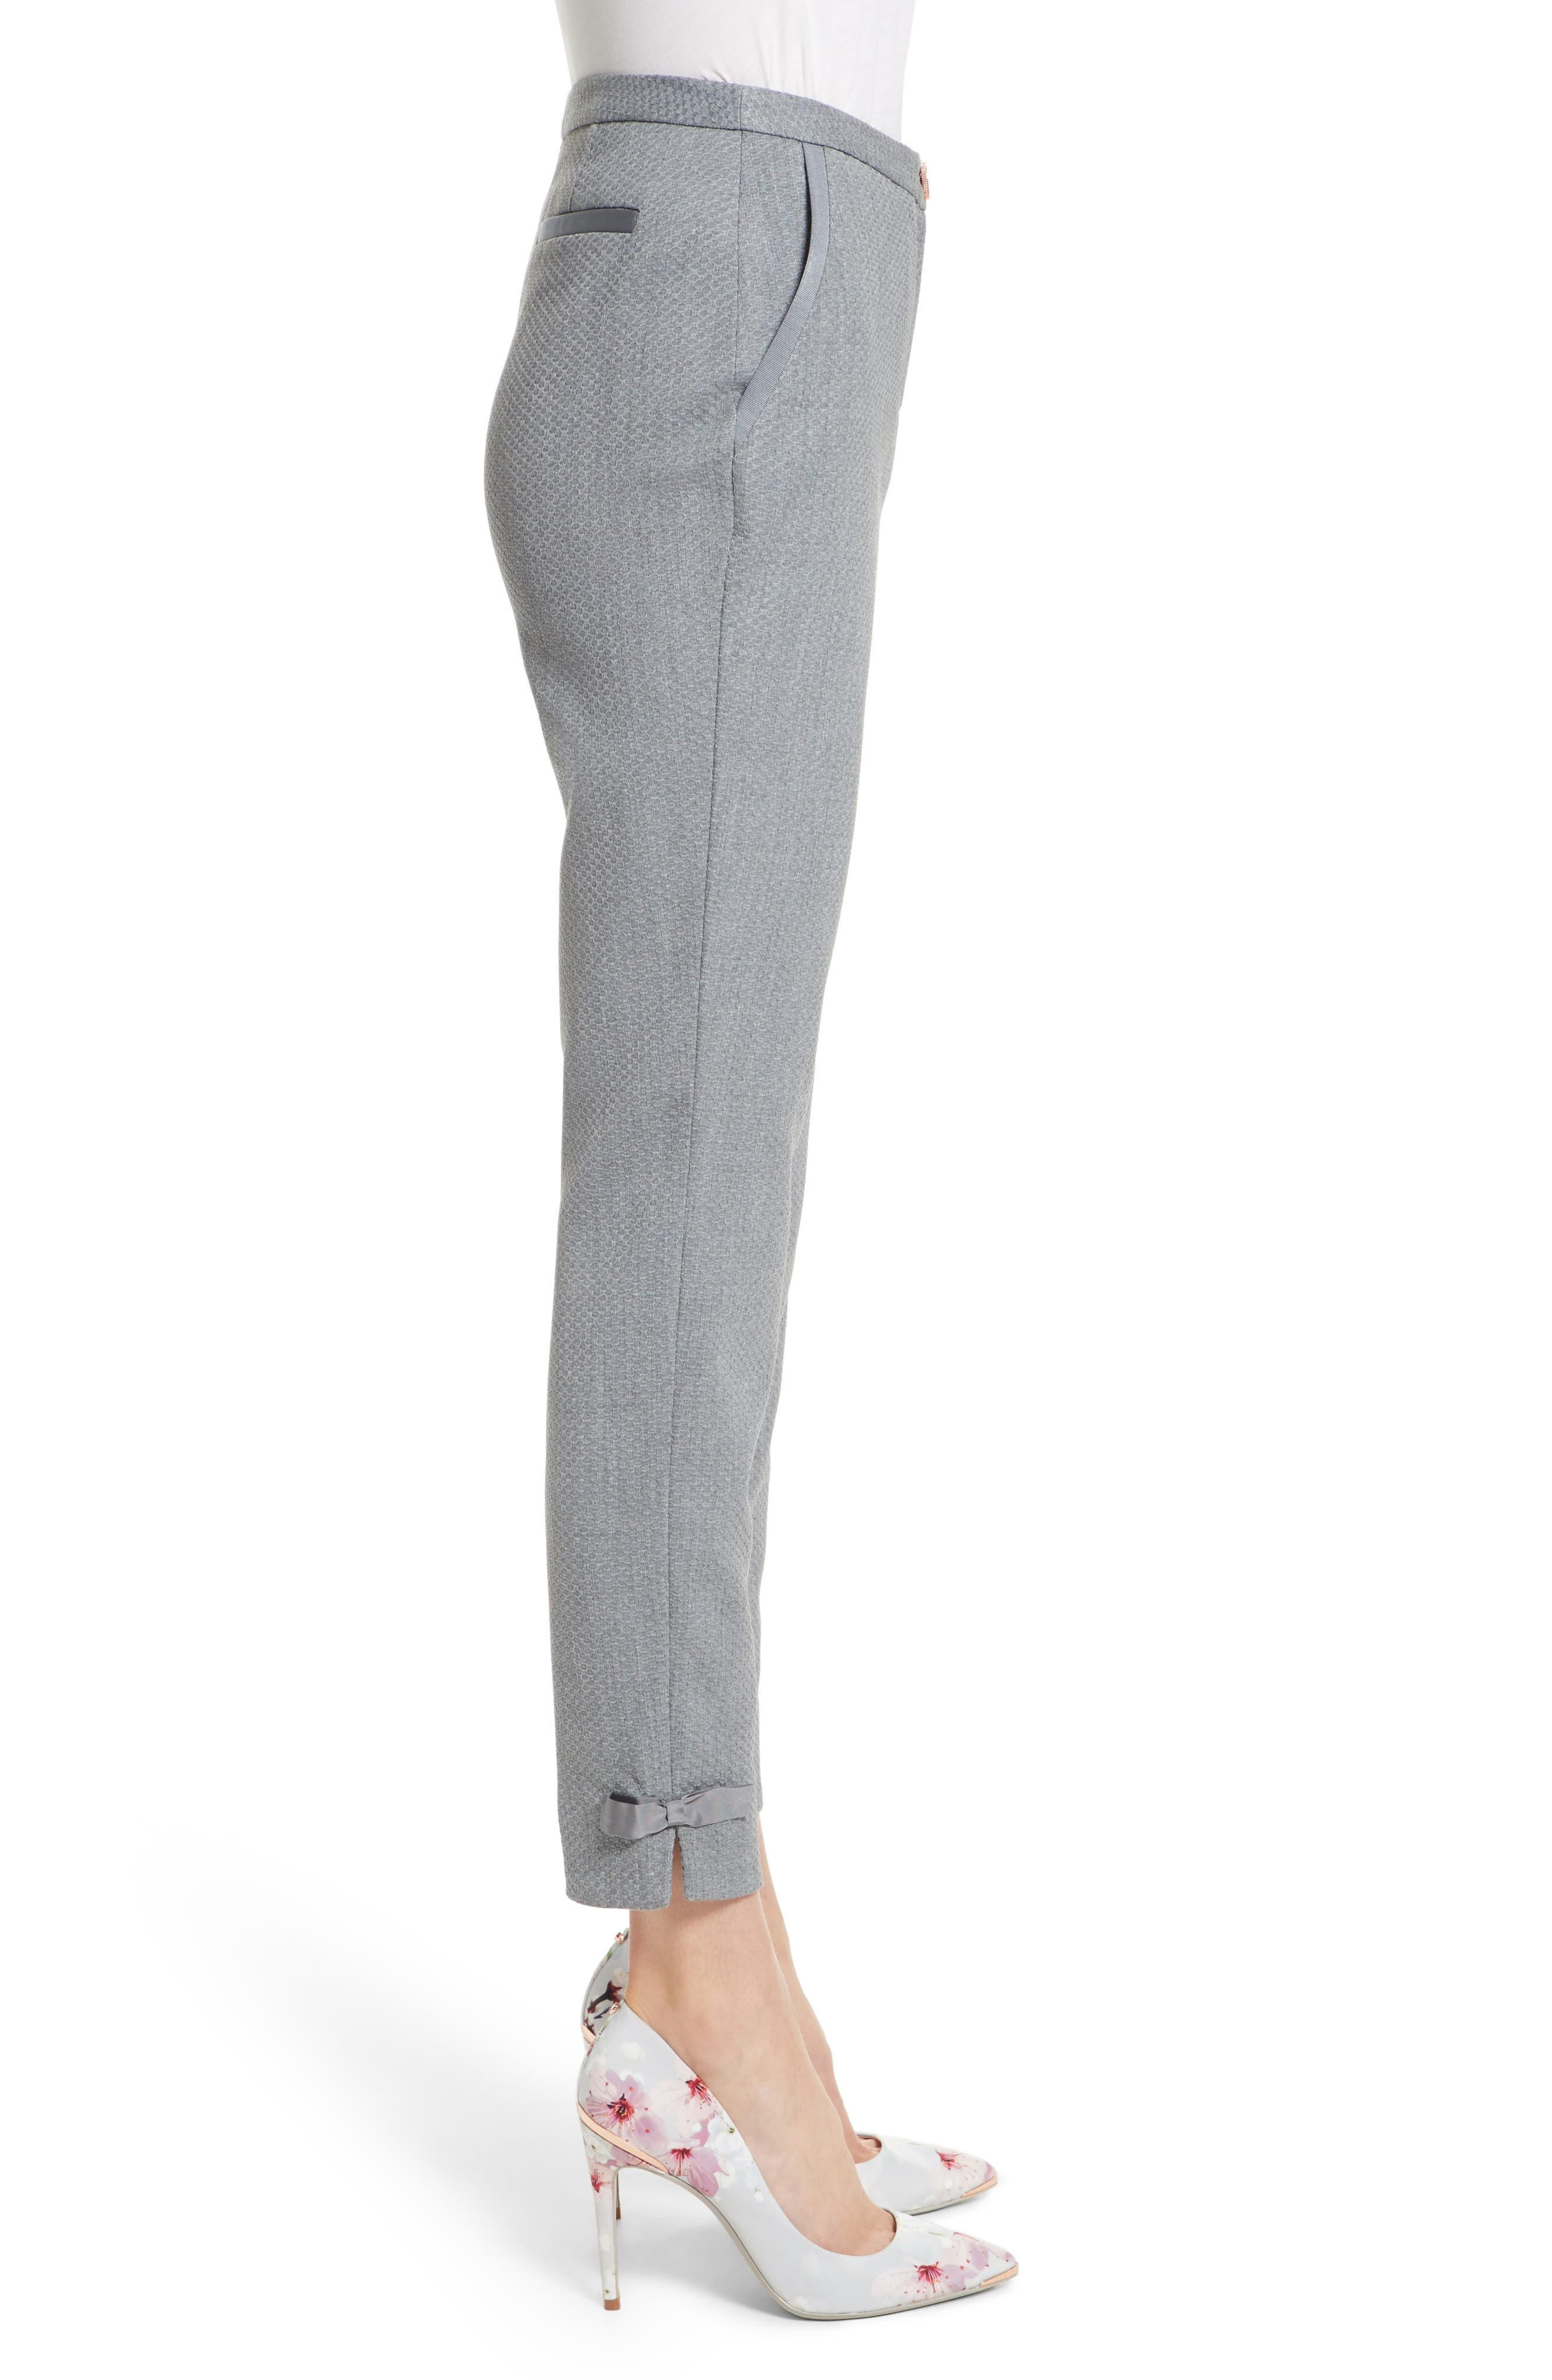 Nadaet Bow Detail Textured Ankle Trousers,                             Alternate thumbnail 3, color,                             021